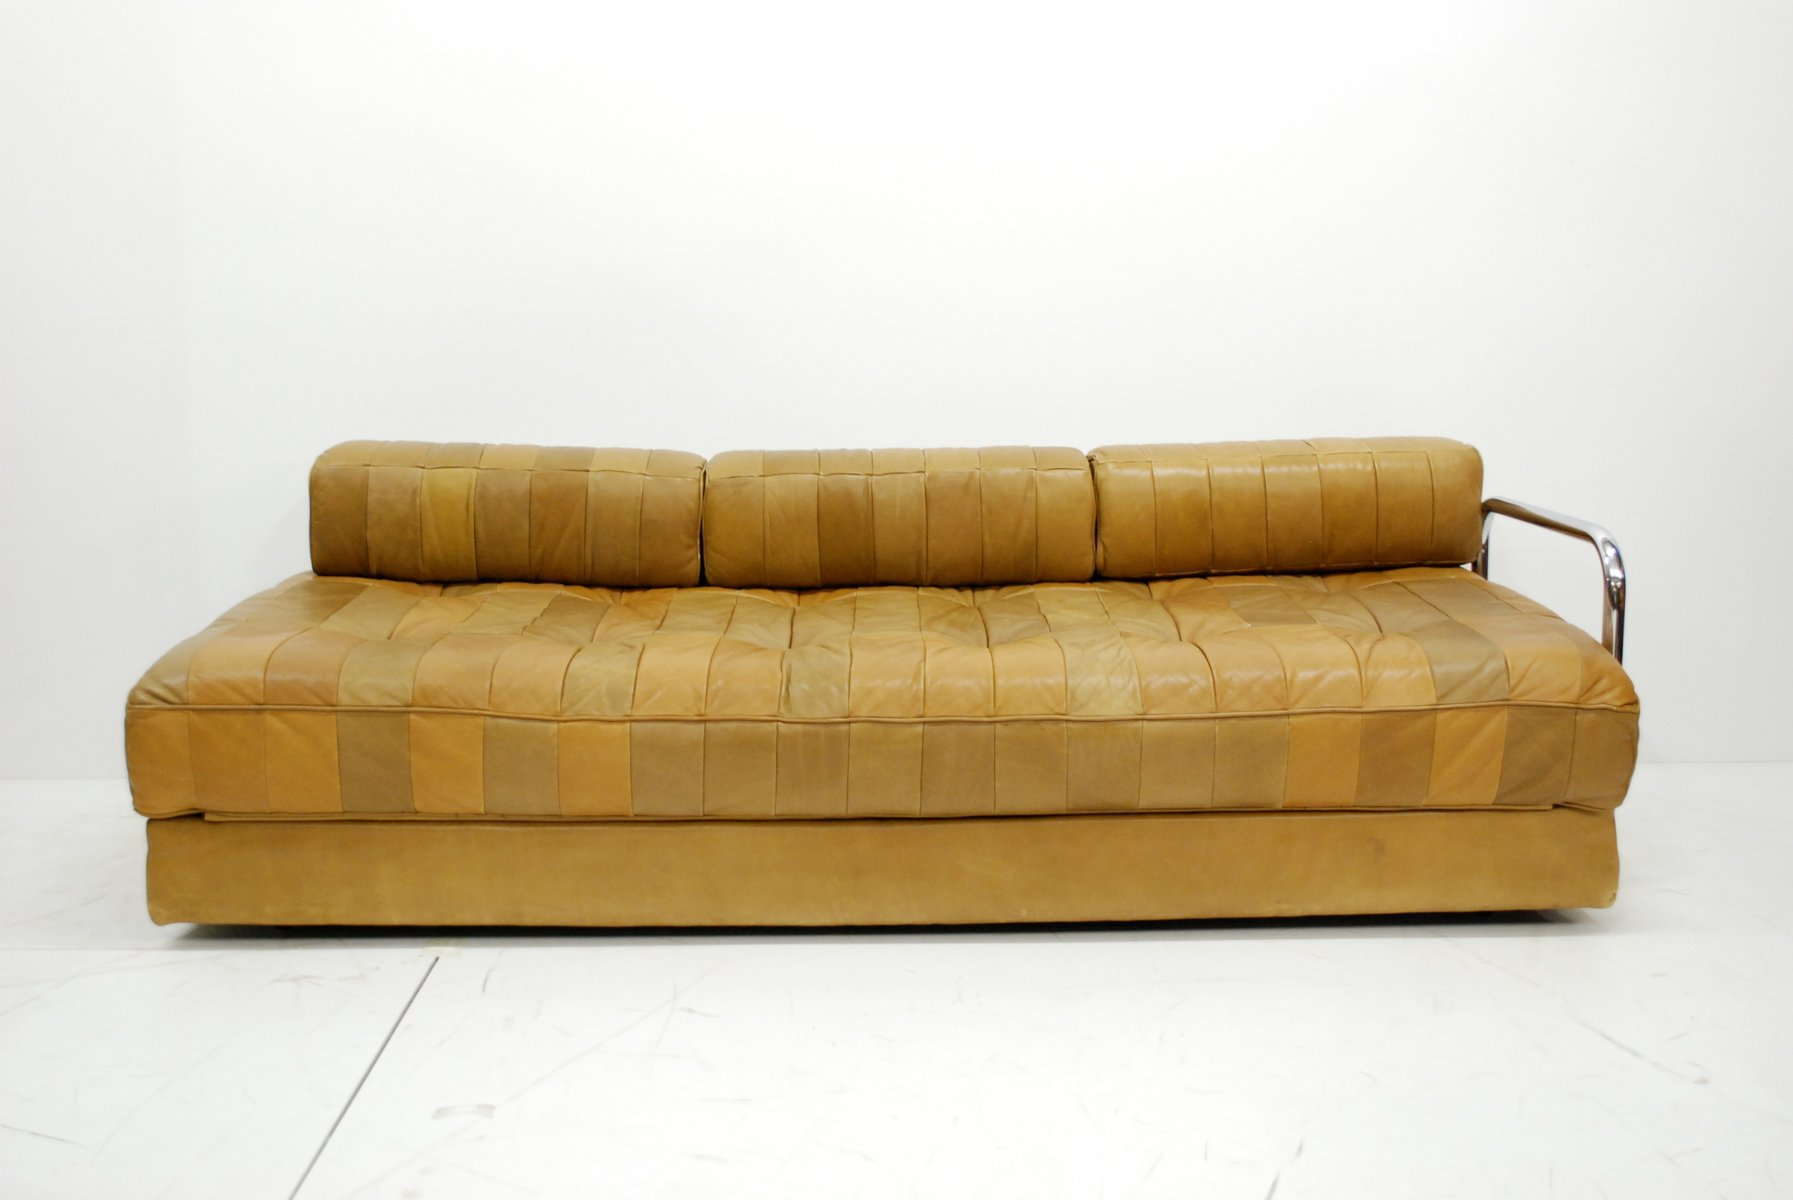 vintage caramel ds 80 schlafsofa aus leder von de sede bei pamono kaufen. Black Bedroom Furniture Sets. Home Design Ideas